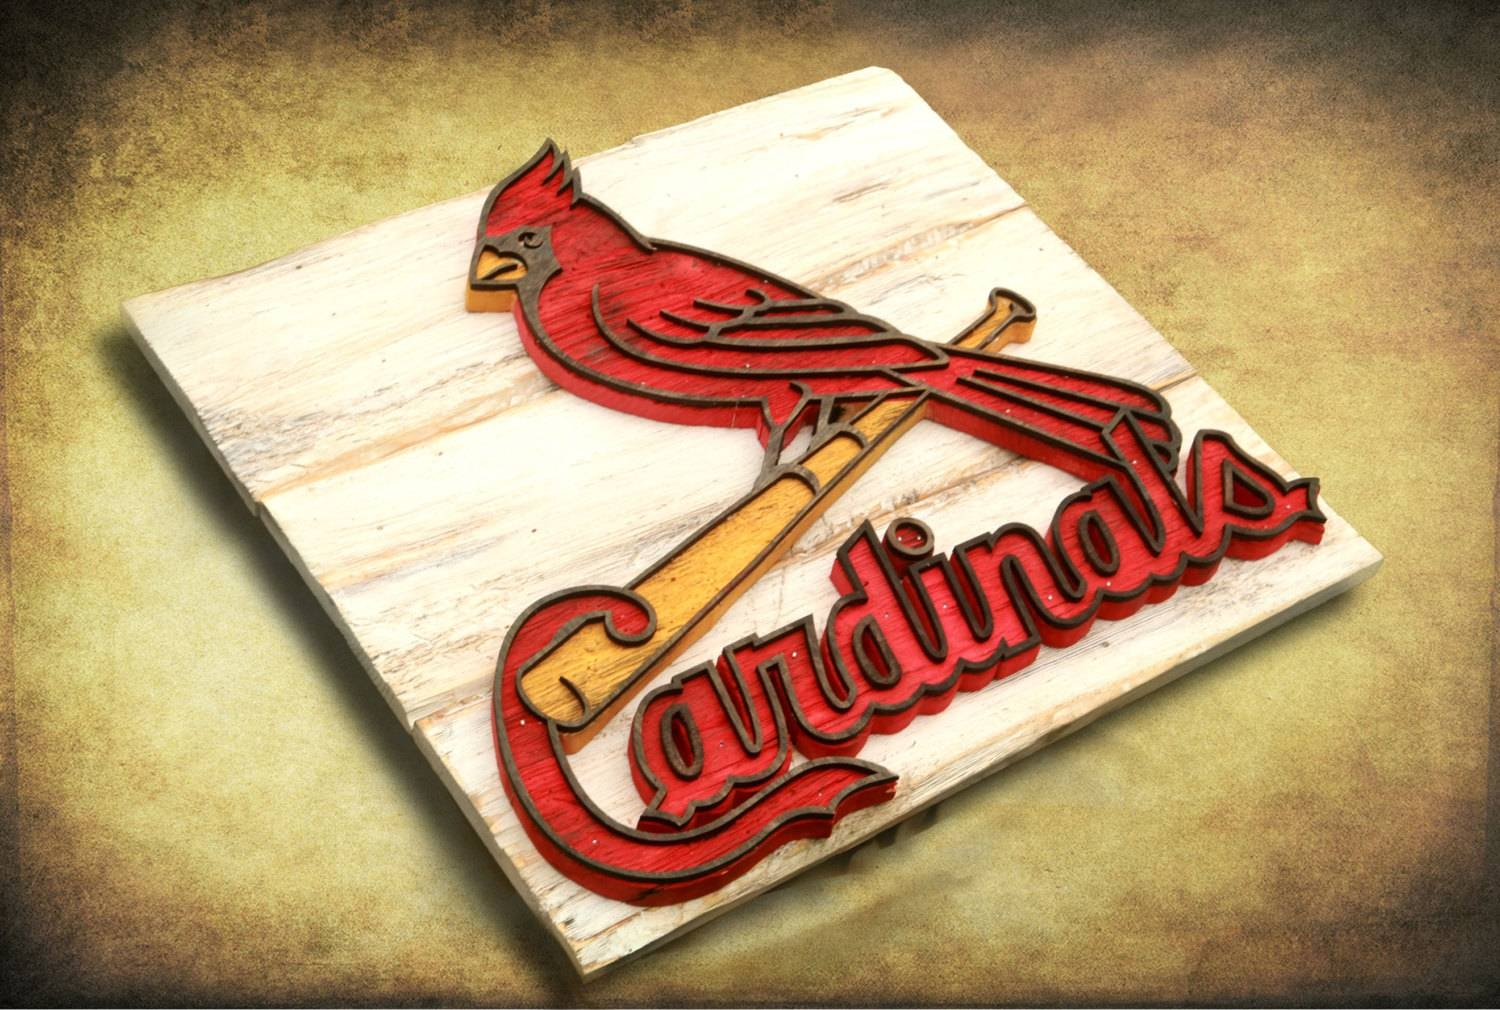 Saint Louis Cardinals Handmade Distressed Wood Sign, Vintage, Art Within Current Vintage Baseball Wall Art (View 14 of 30)